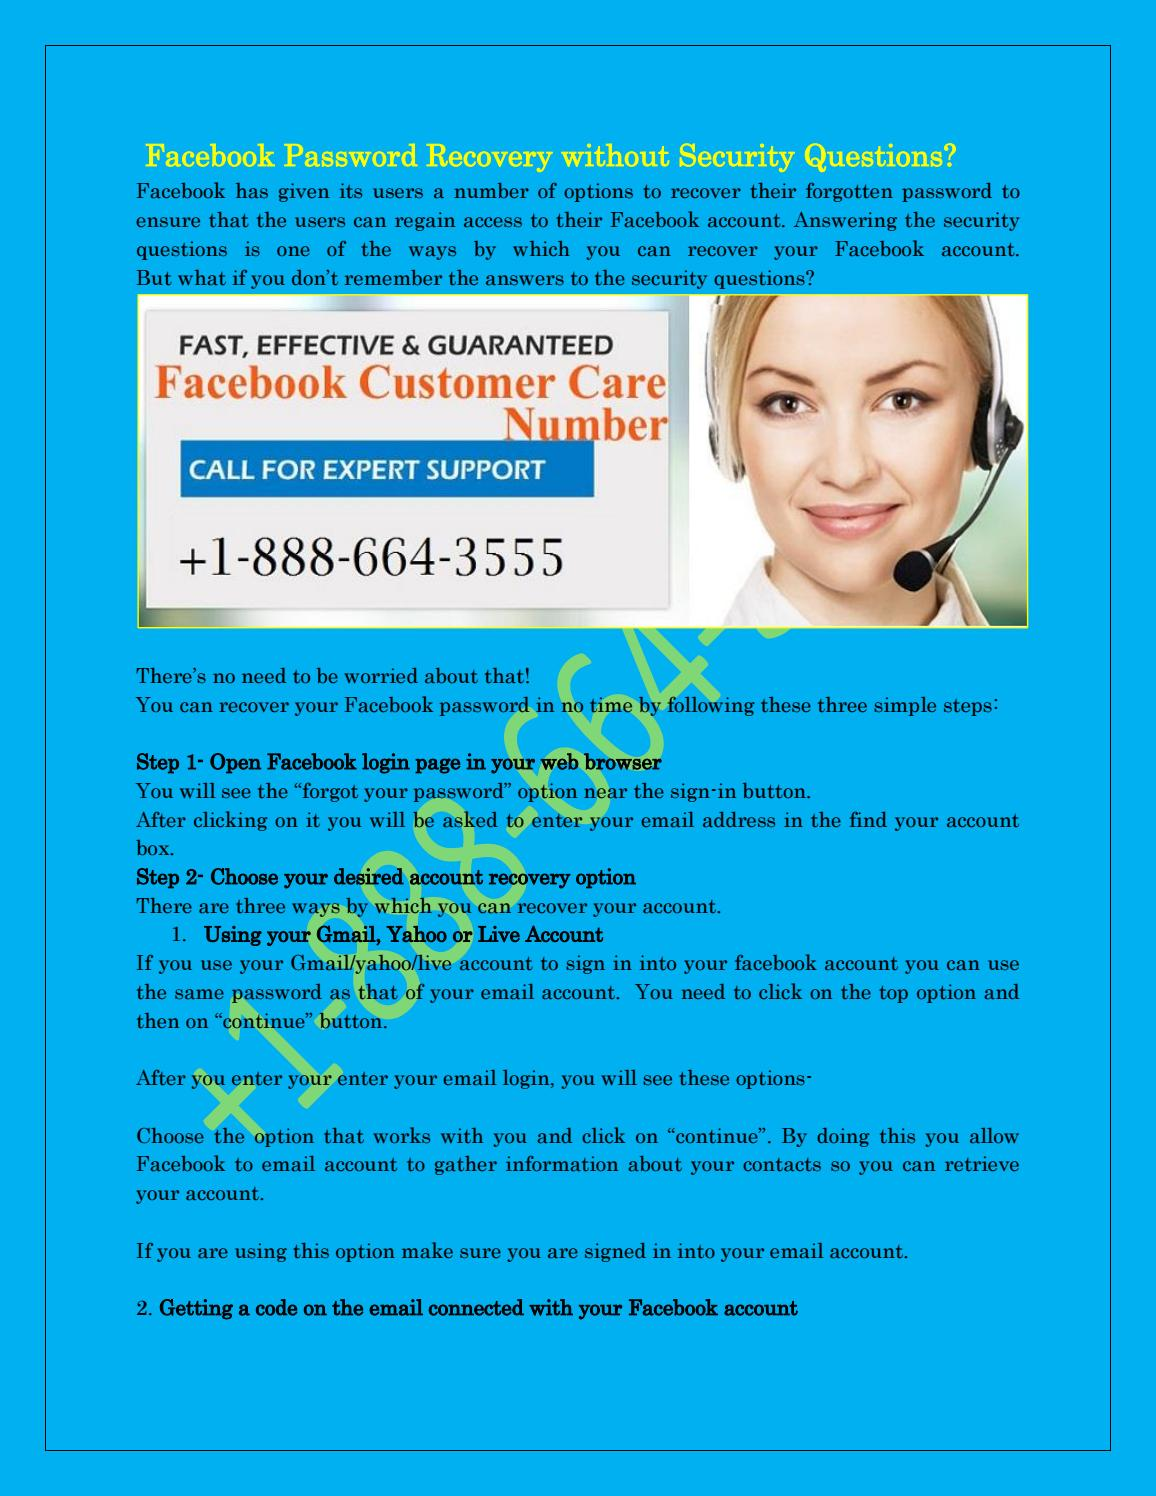 Facebook password recovery phone number +1-888-664-3555 by